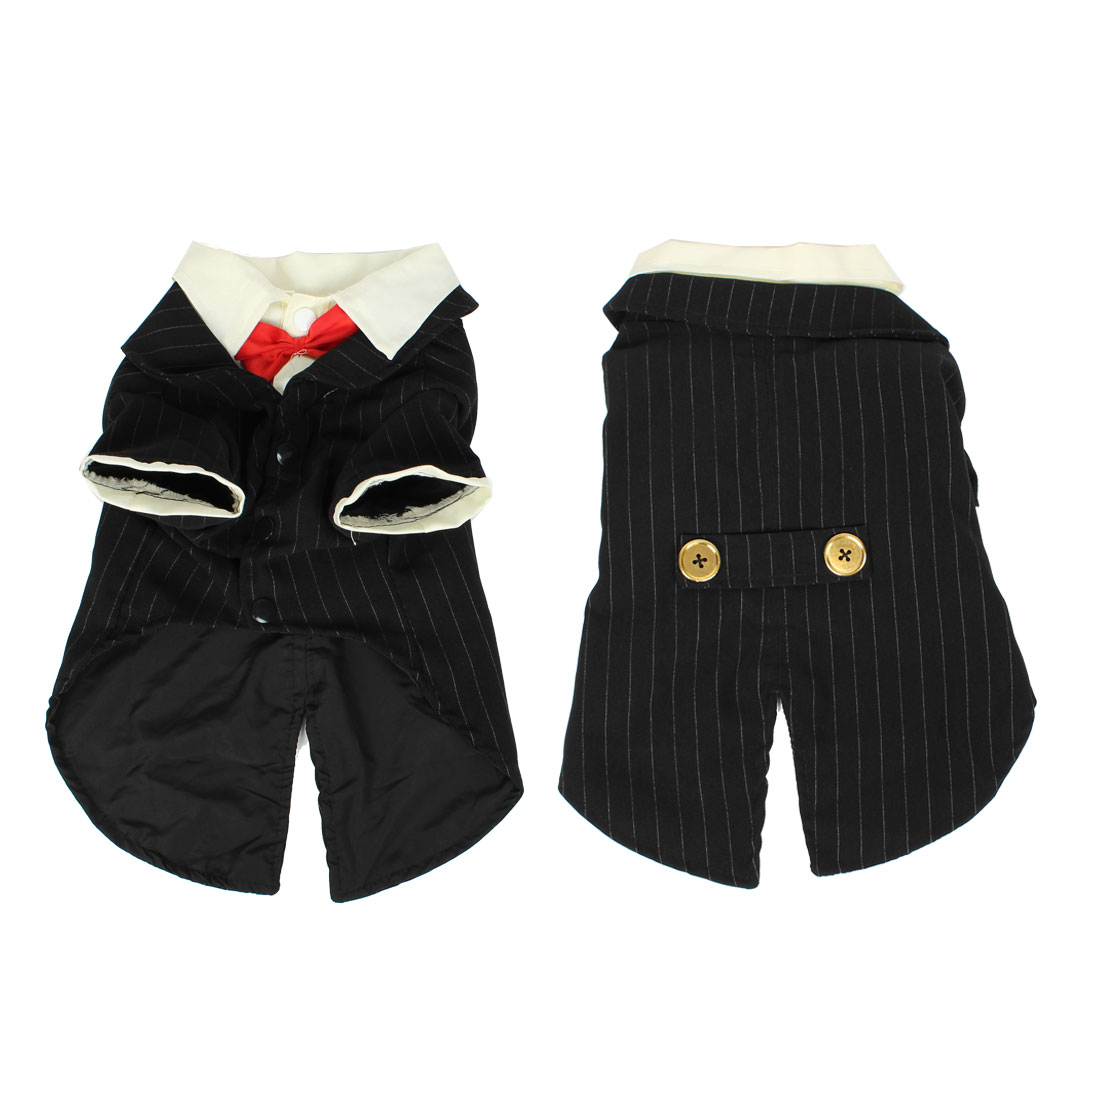 Pet Dog Chihuahua Apparel Groom Suit Wedding Dress Doggie Clothes Coat Black L